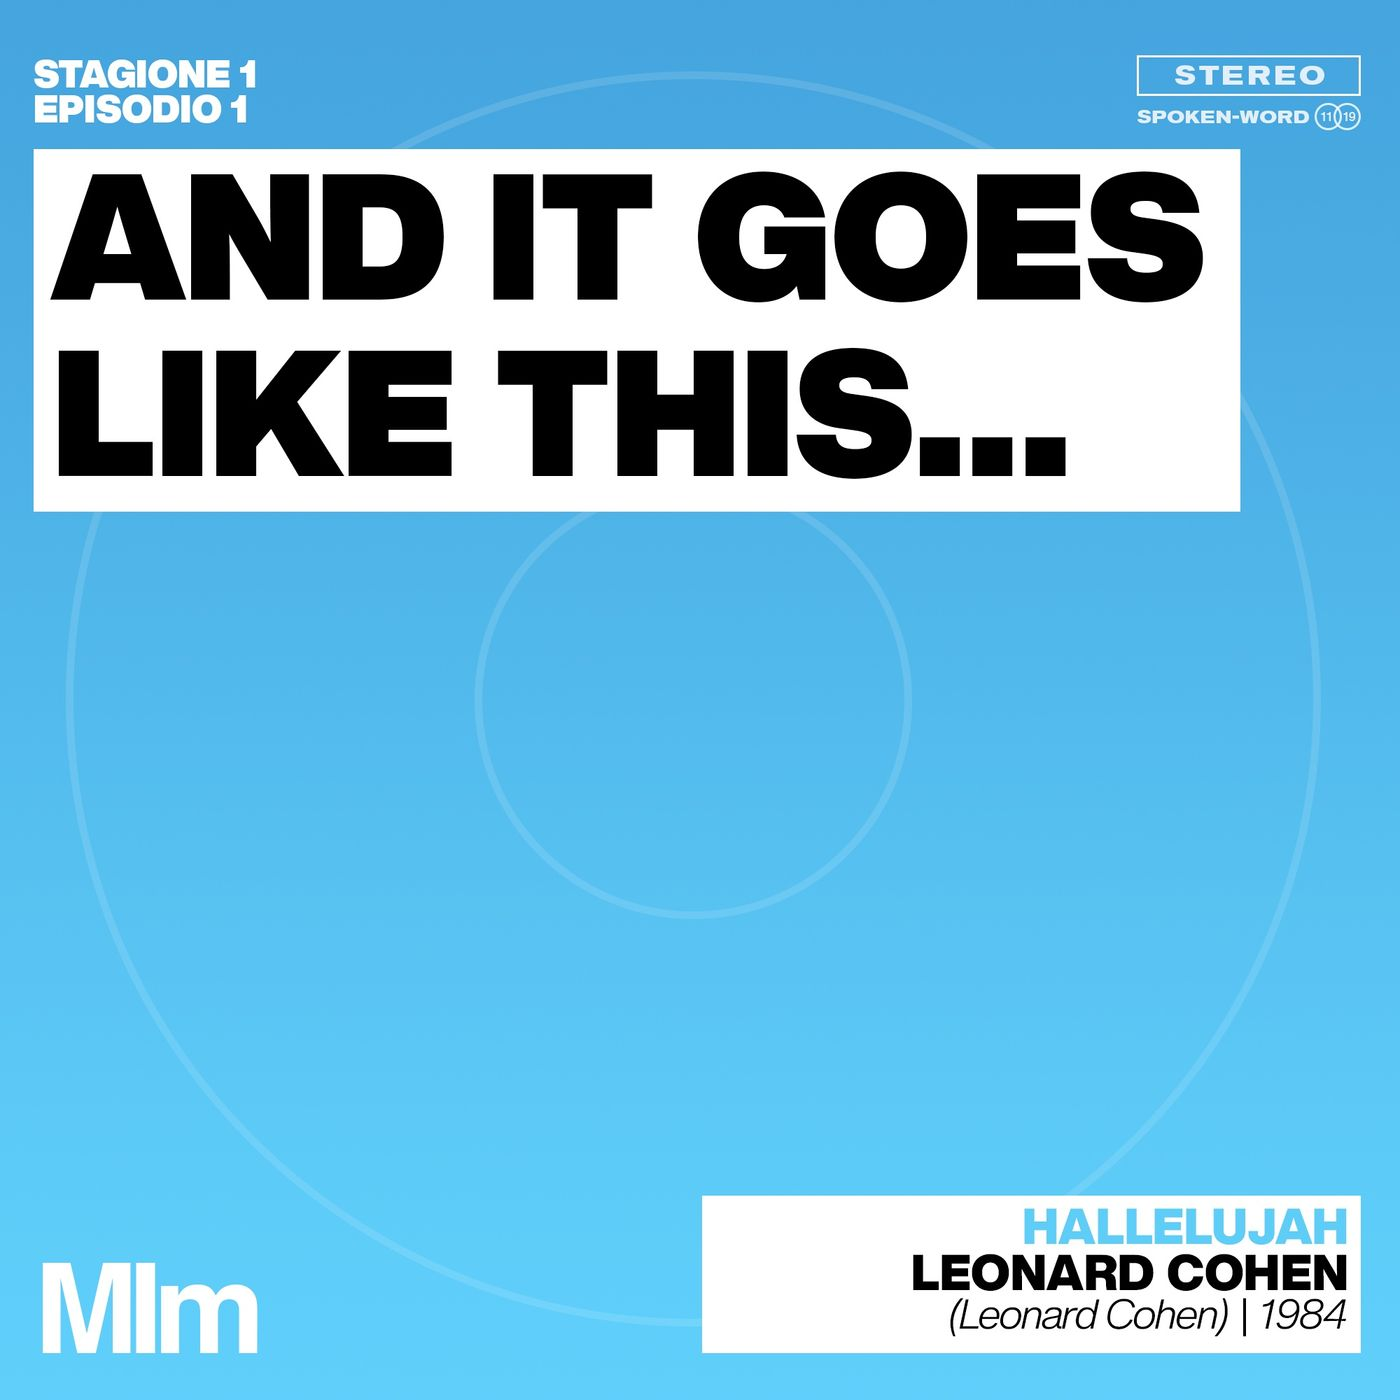 #1: And It Goes Like This... (HALLELUJAH - Leonard Cohen)